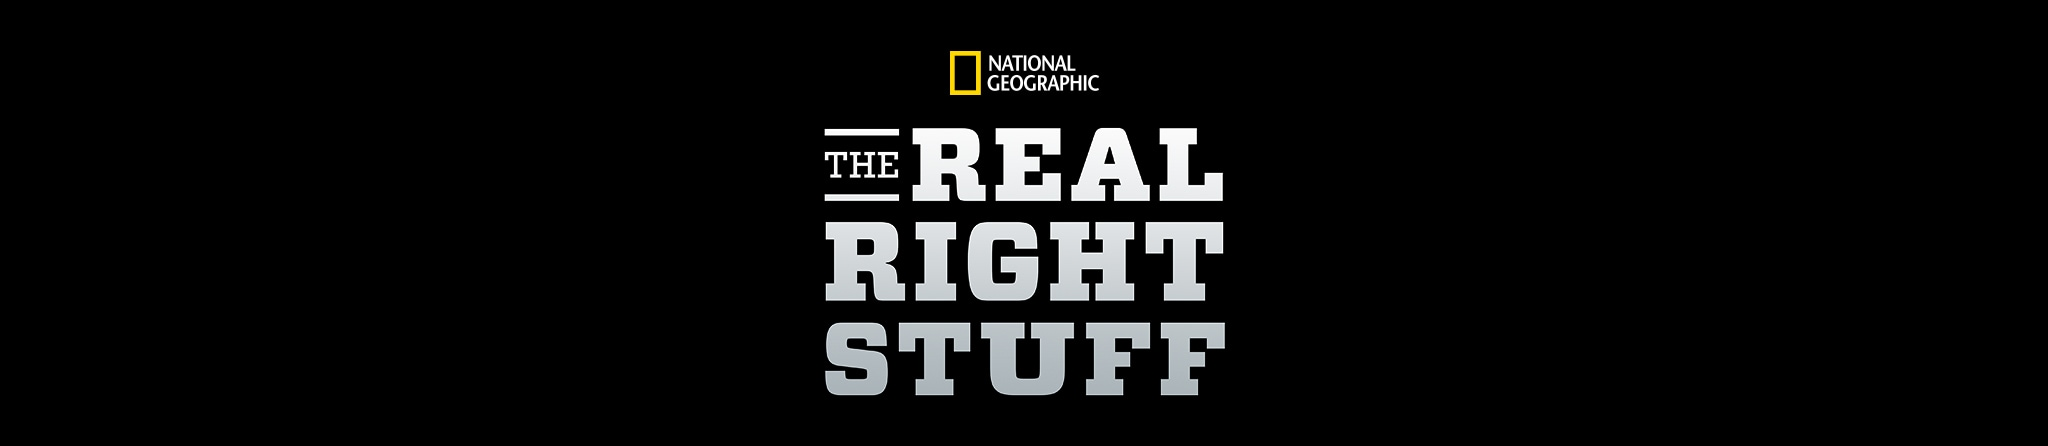 National Geographic | The Real Right Stuff